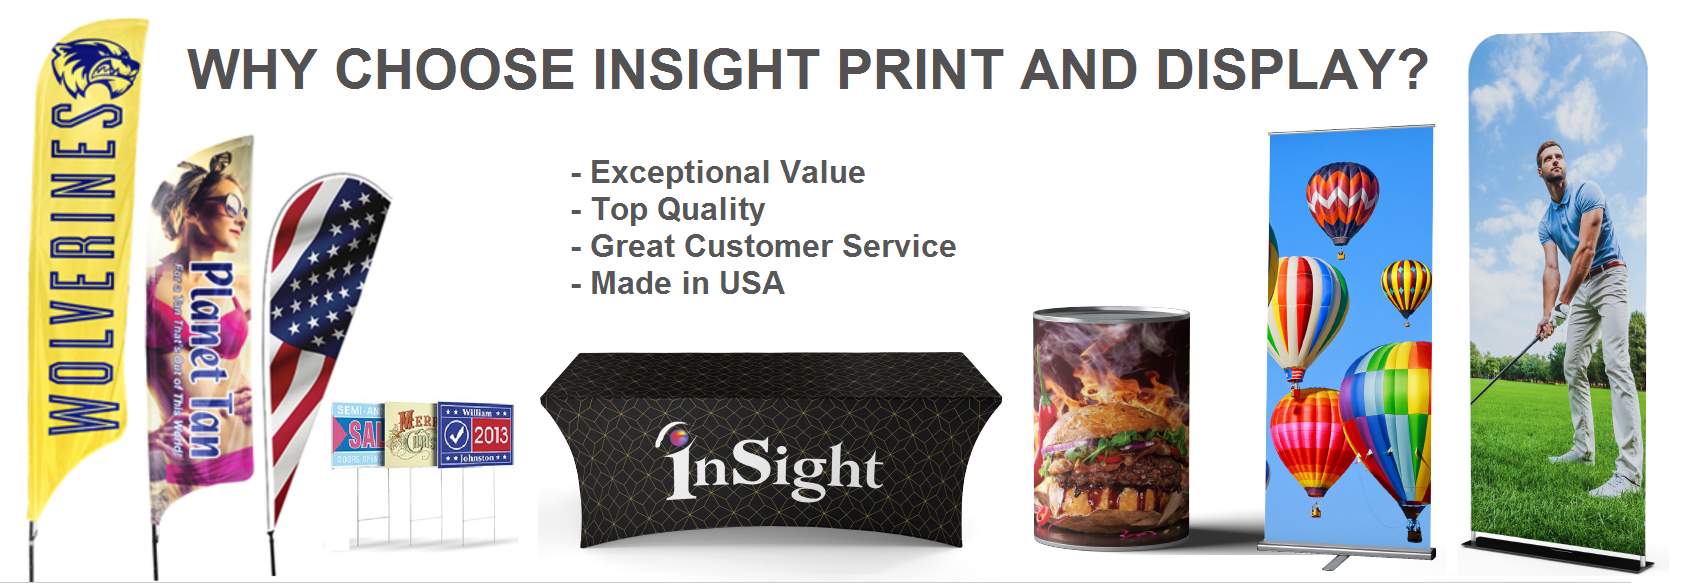 Why Choose Insight?